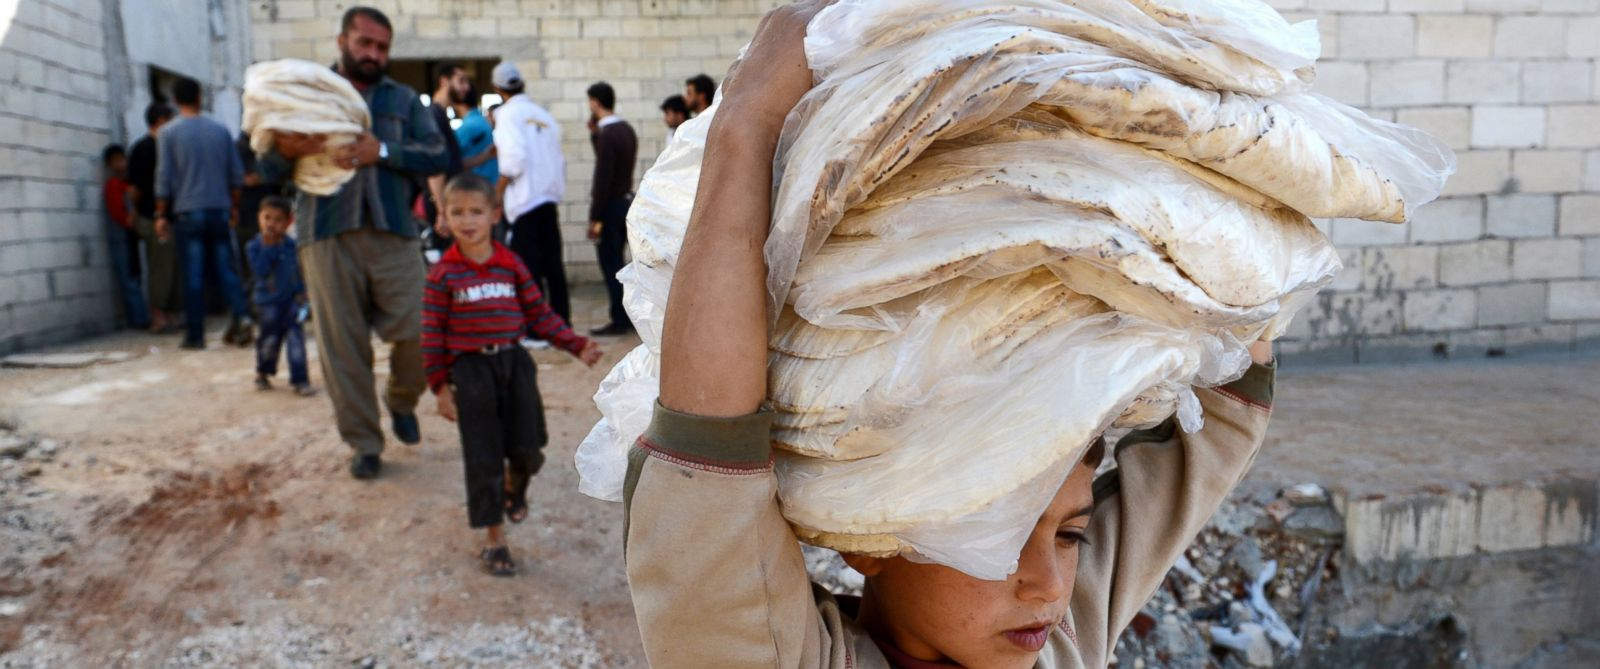 PHOTO: A Syrian boy carries bread in the northern Syrian town of Atareb in the Aleppo province in this file photo from Nov. 7, 2012.